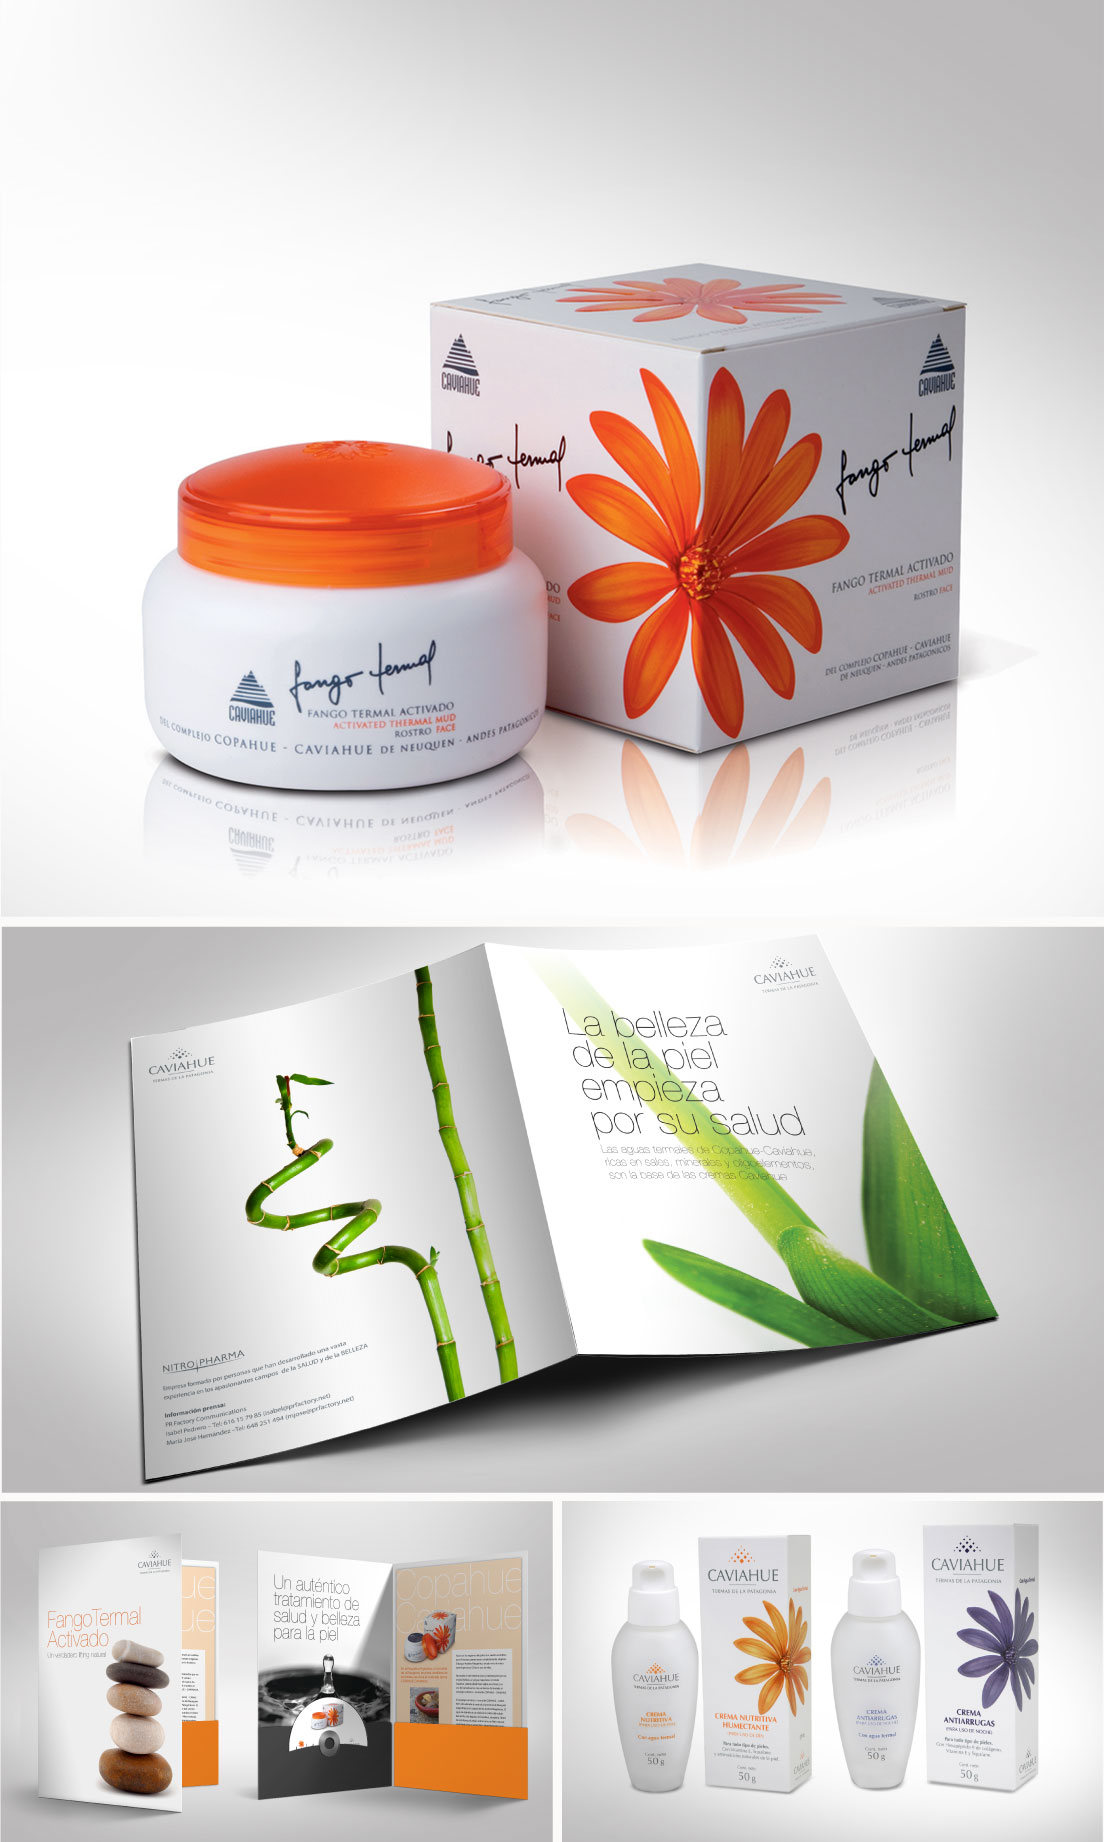 Caviahue thermal mud, branding and packaging